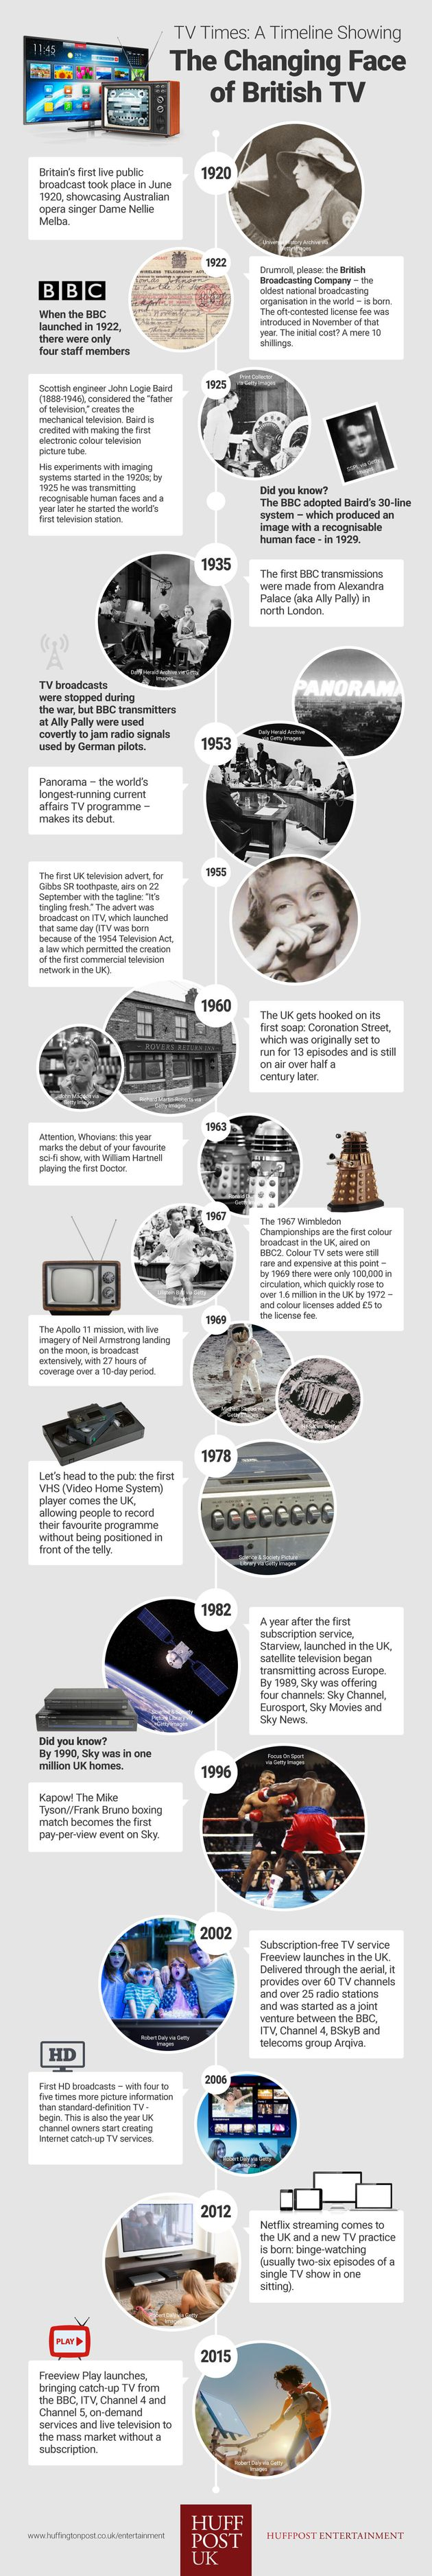 TV Times: A Timeline Showing The Changing Face of British